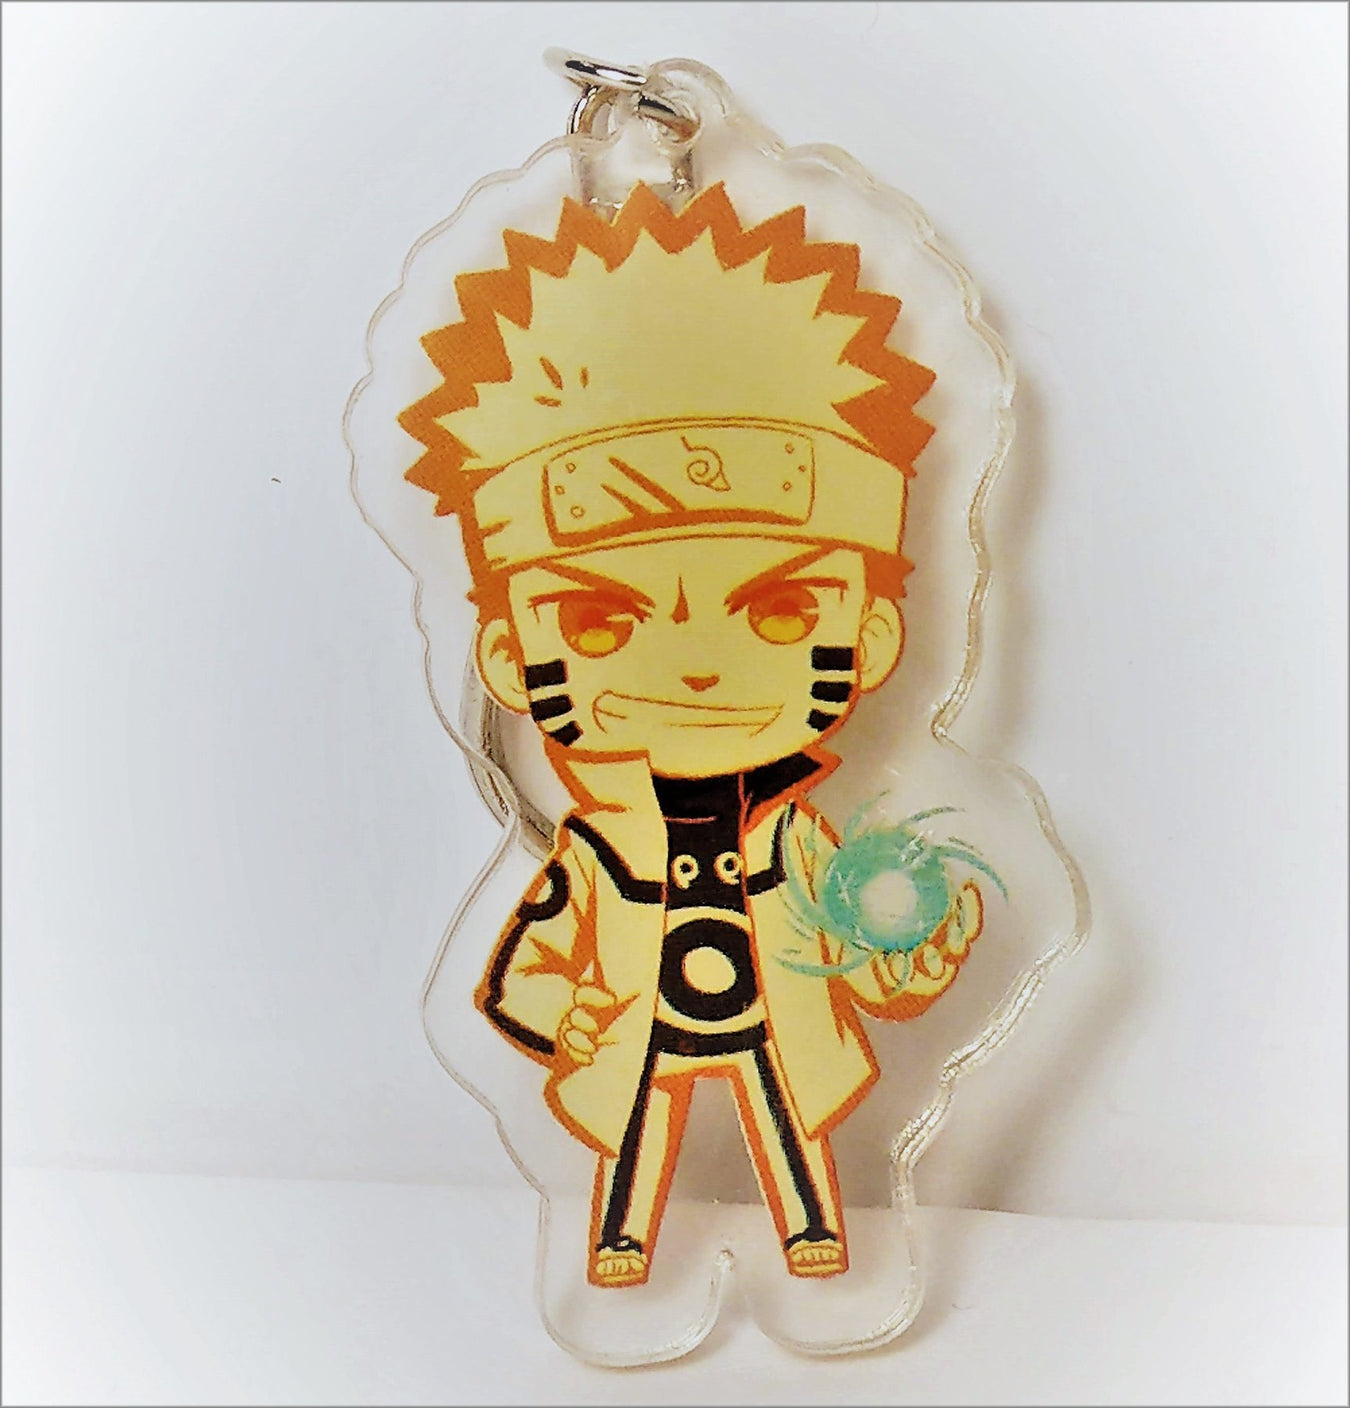 Speciality and exclusive keychains from Naruto, Naruto Pain, Kakashi, Naruto Uchiha Sasuke, Obito Tobi, Konan and more at Prodigy Toys